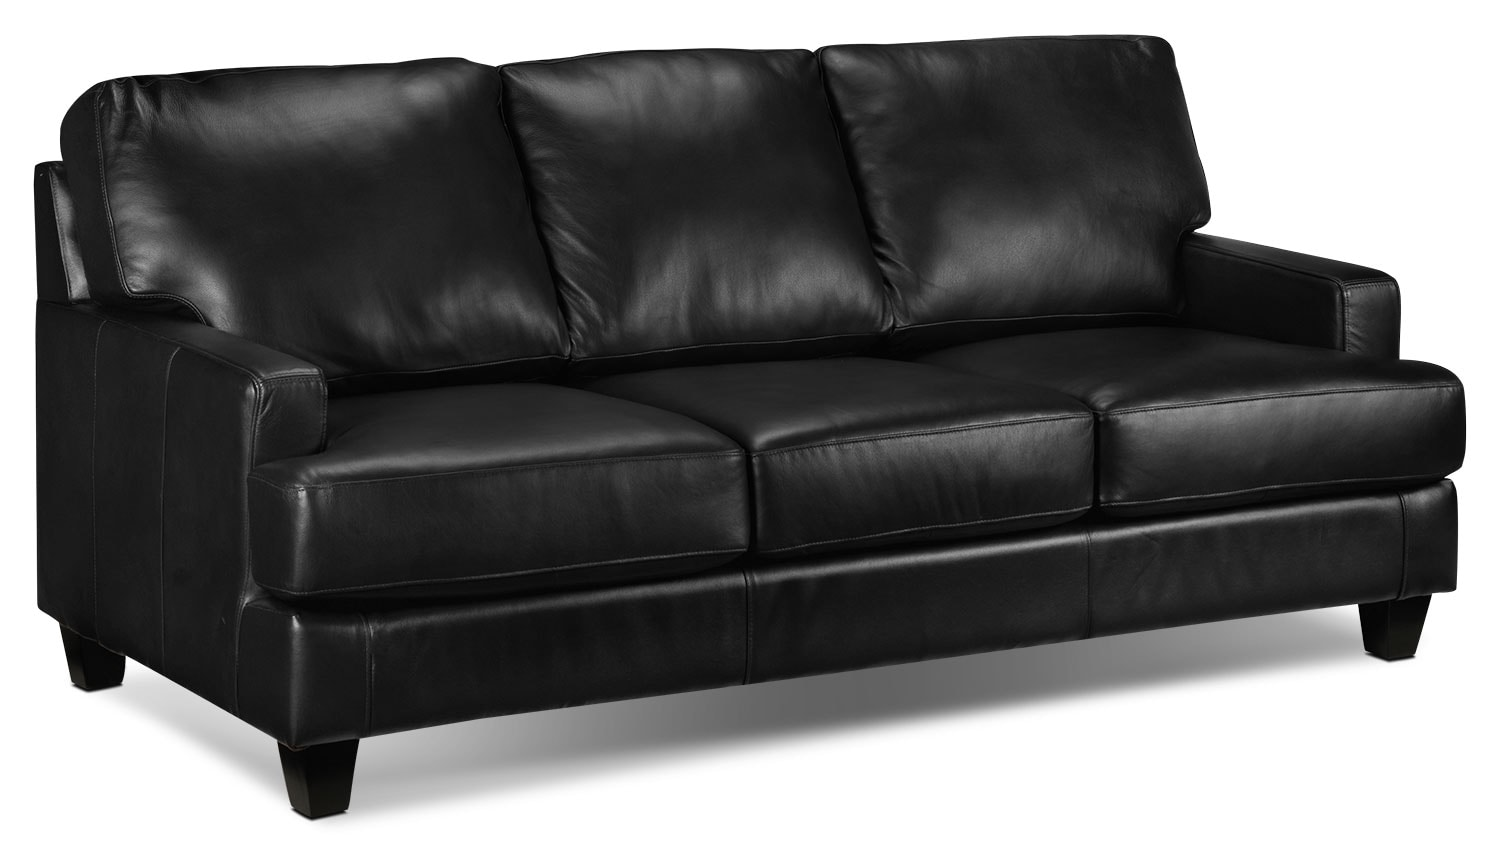 Living Room Furniture - Janie Sofa - Black